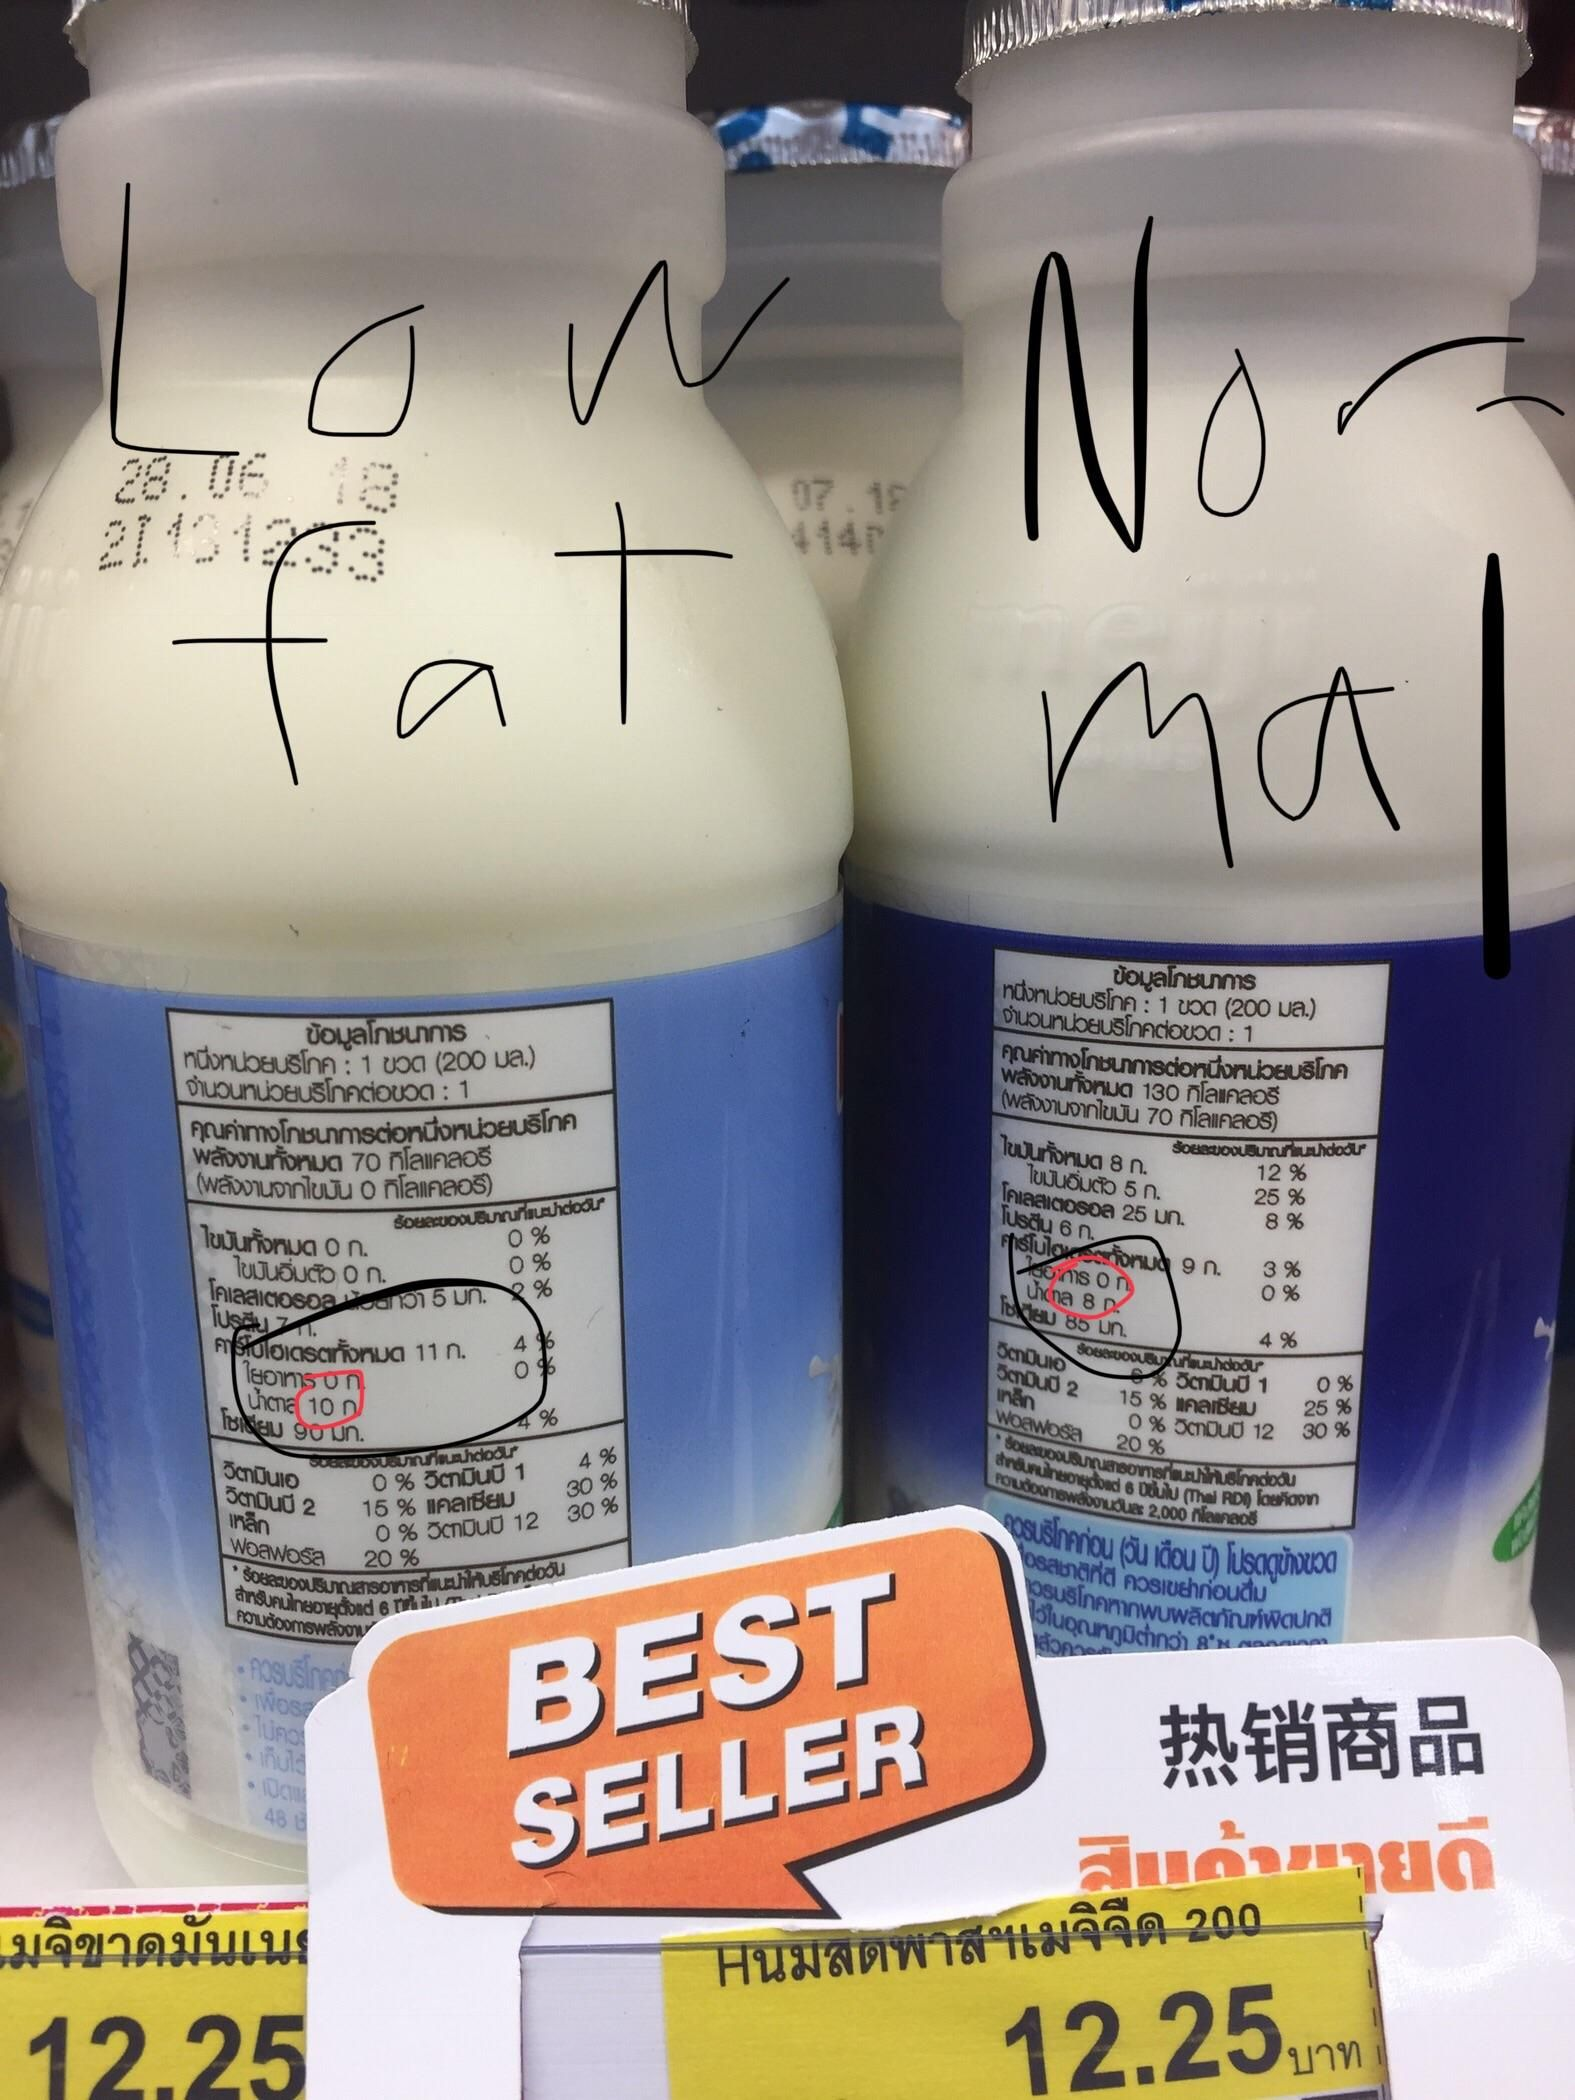 Low Fat Milk Has More Sugar Than Normal Milk By